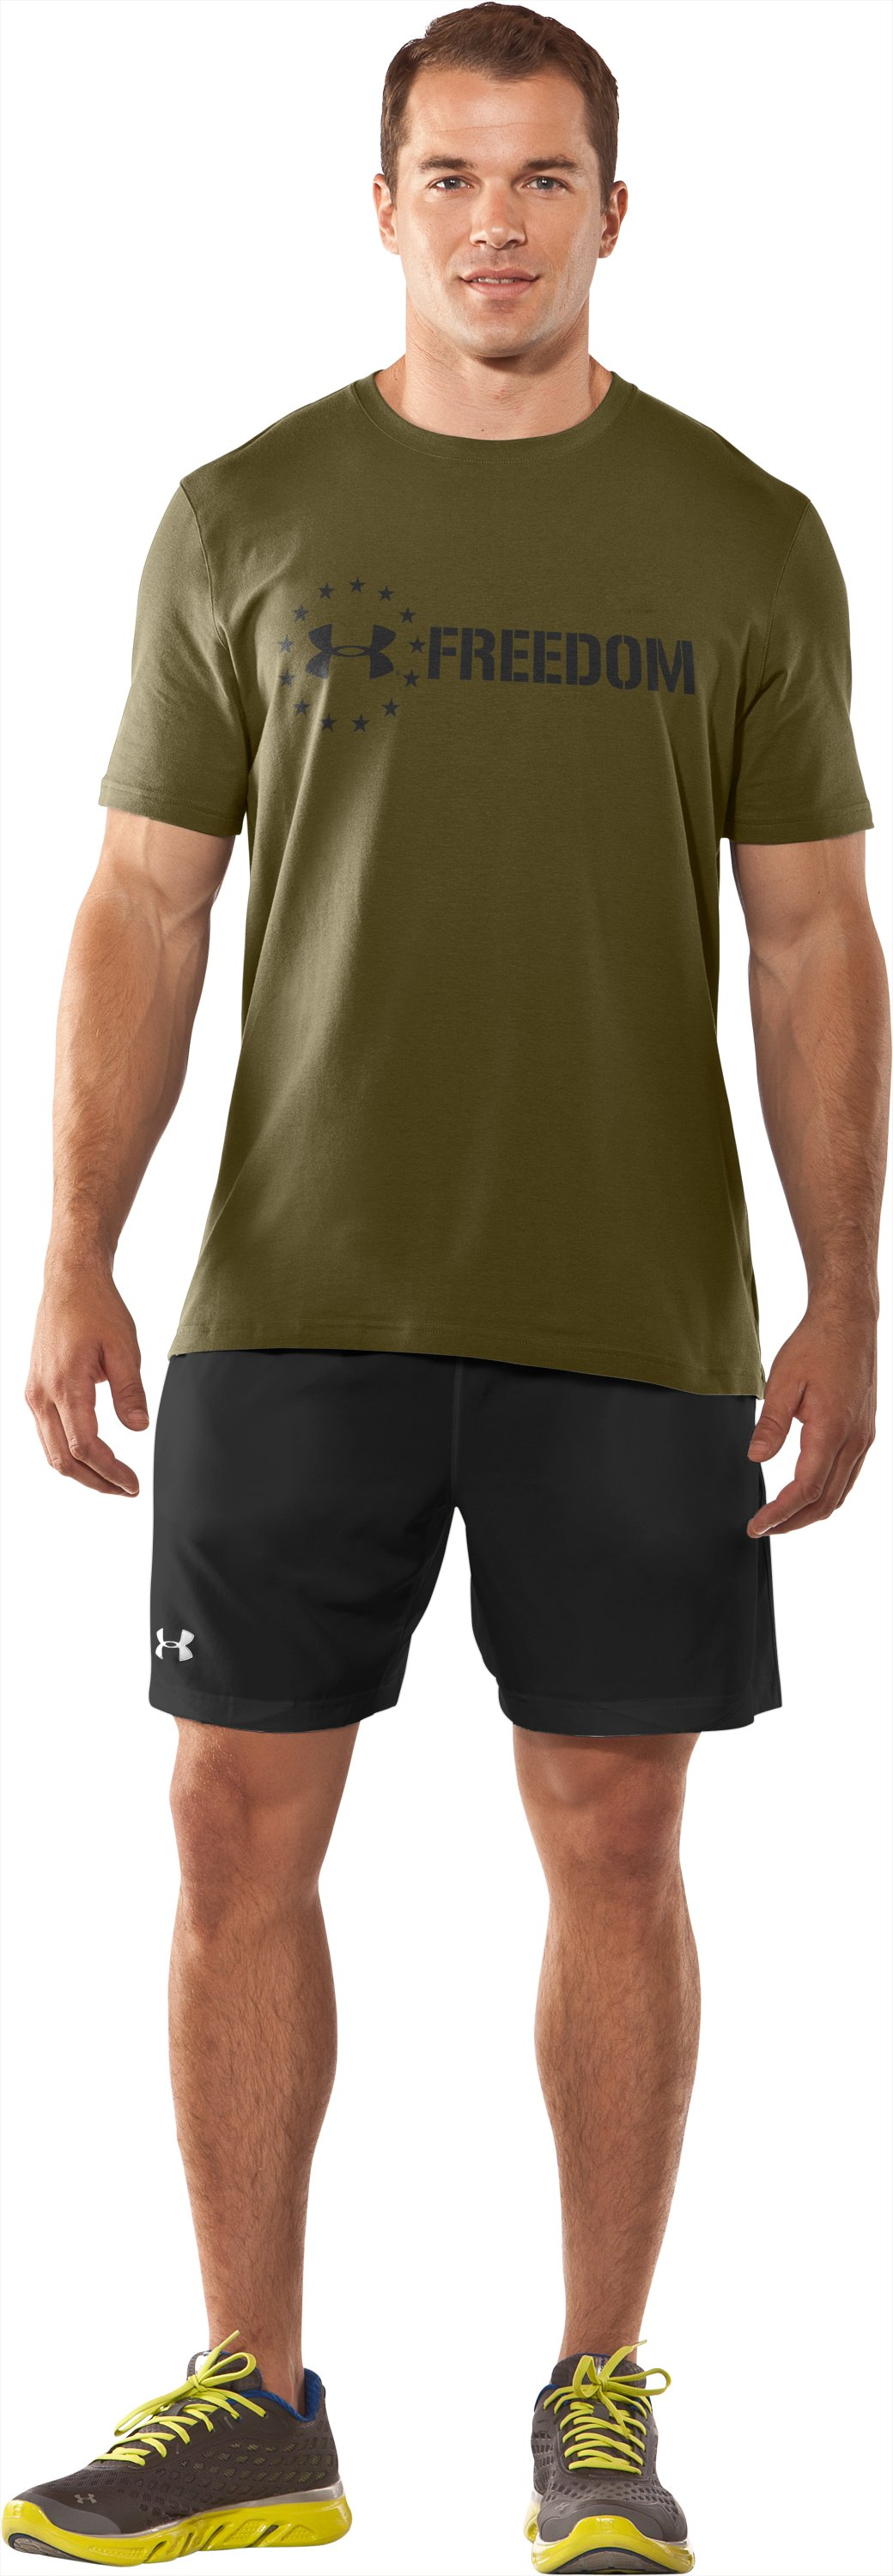 Men's Deployment T-Shirt, Marine OD Green